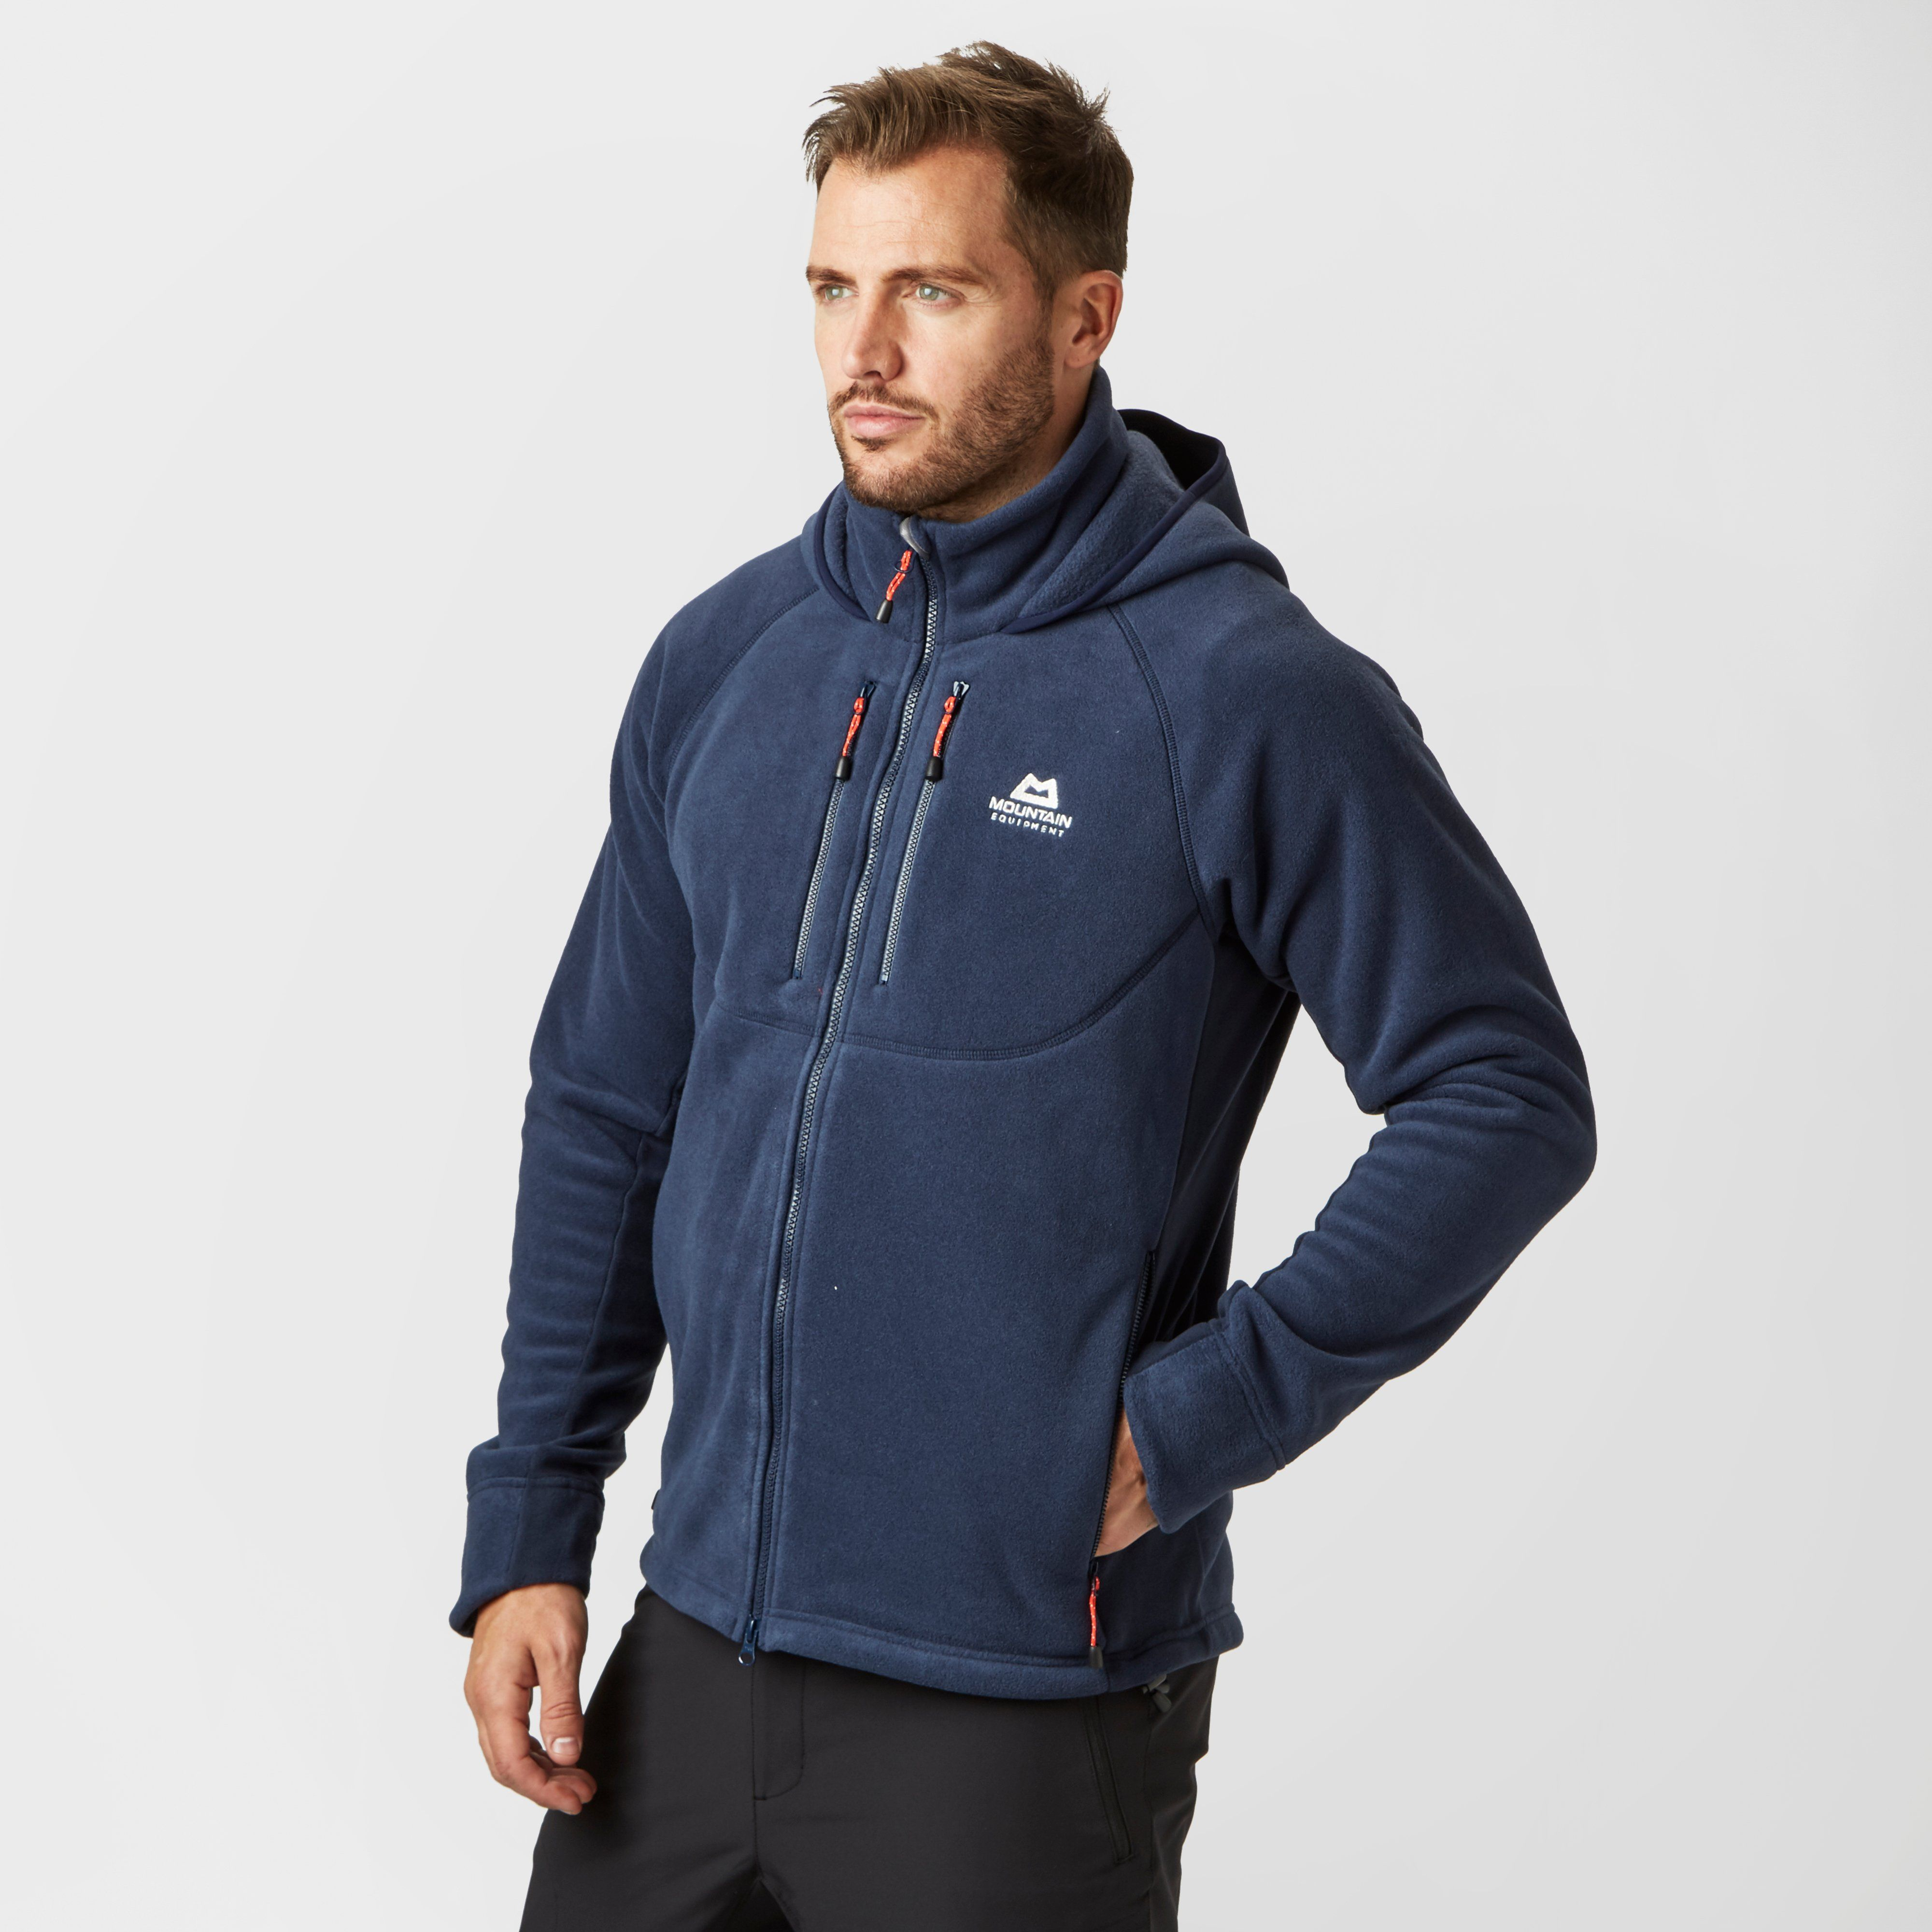 MOUNTAIN EQUIPMENT Men's Touchstone Fleece